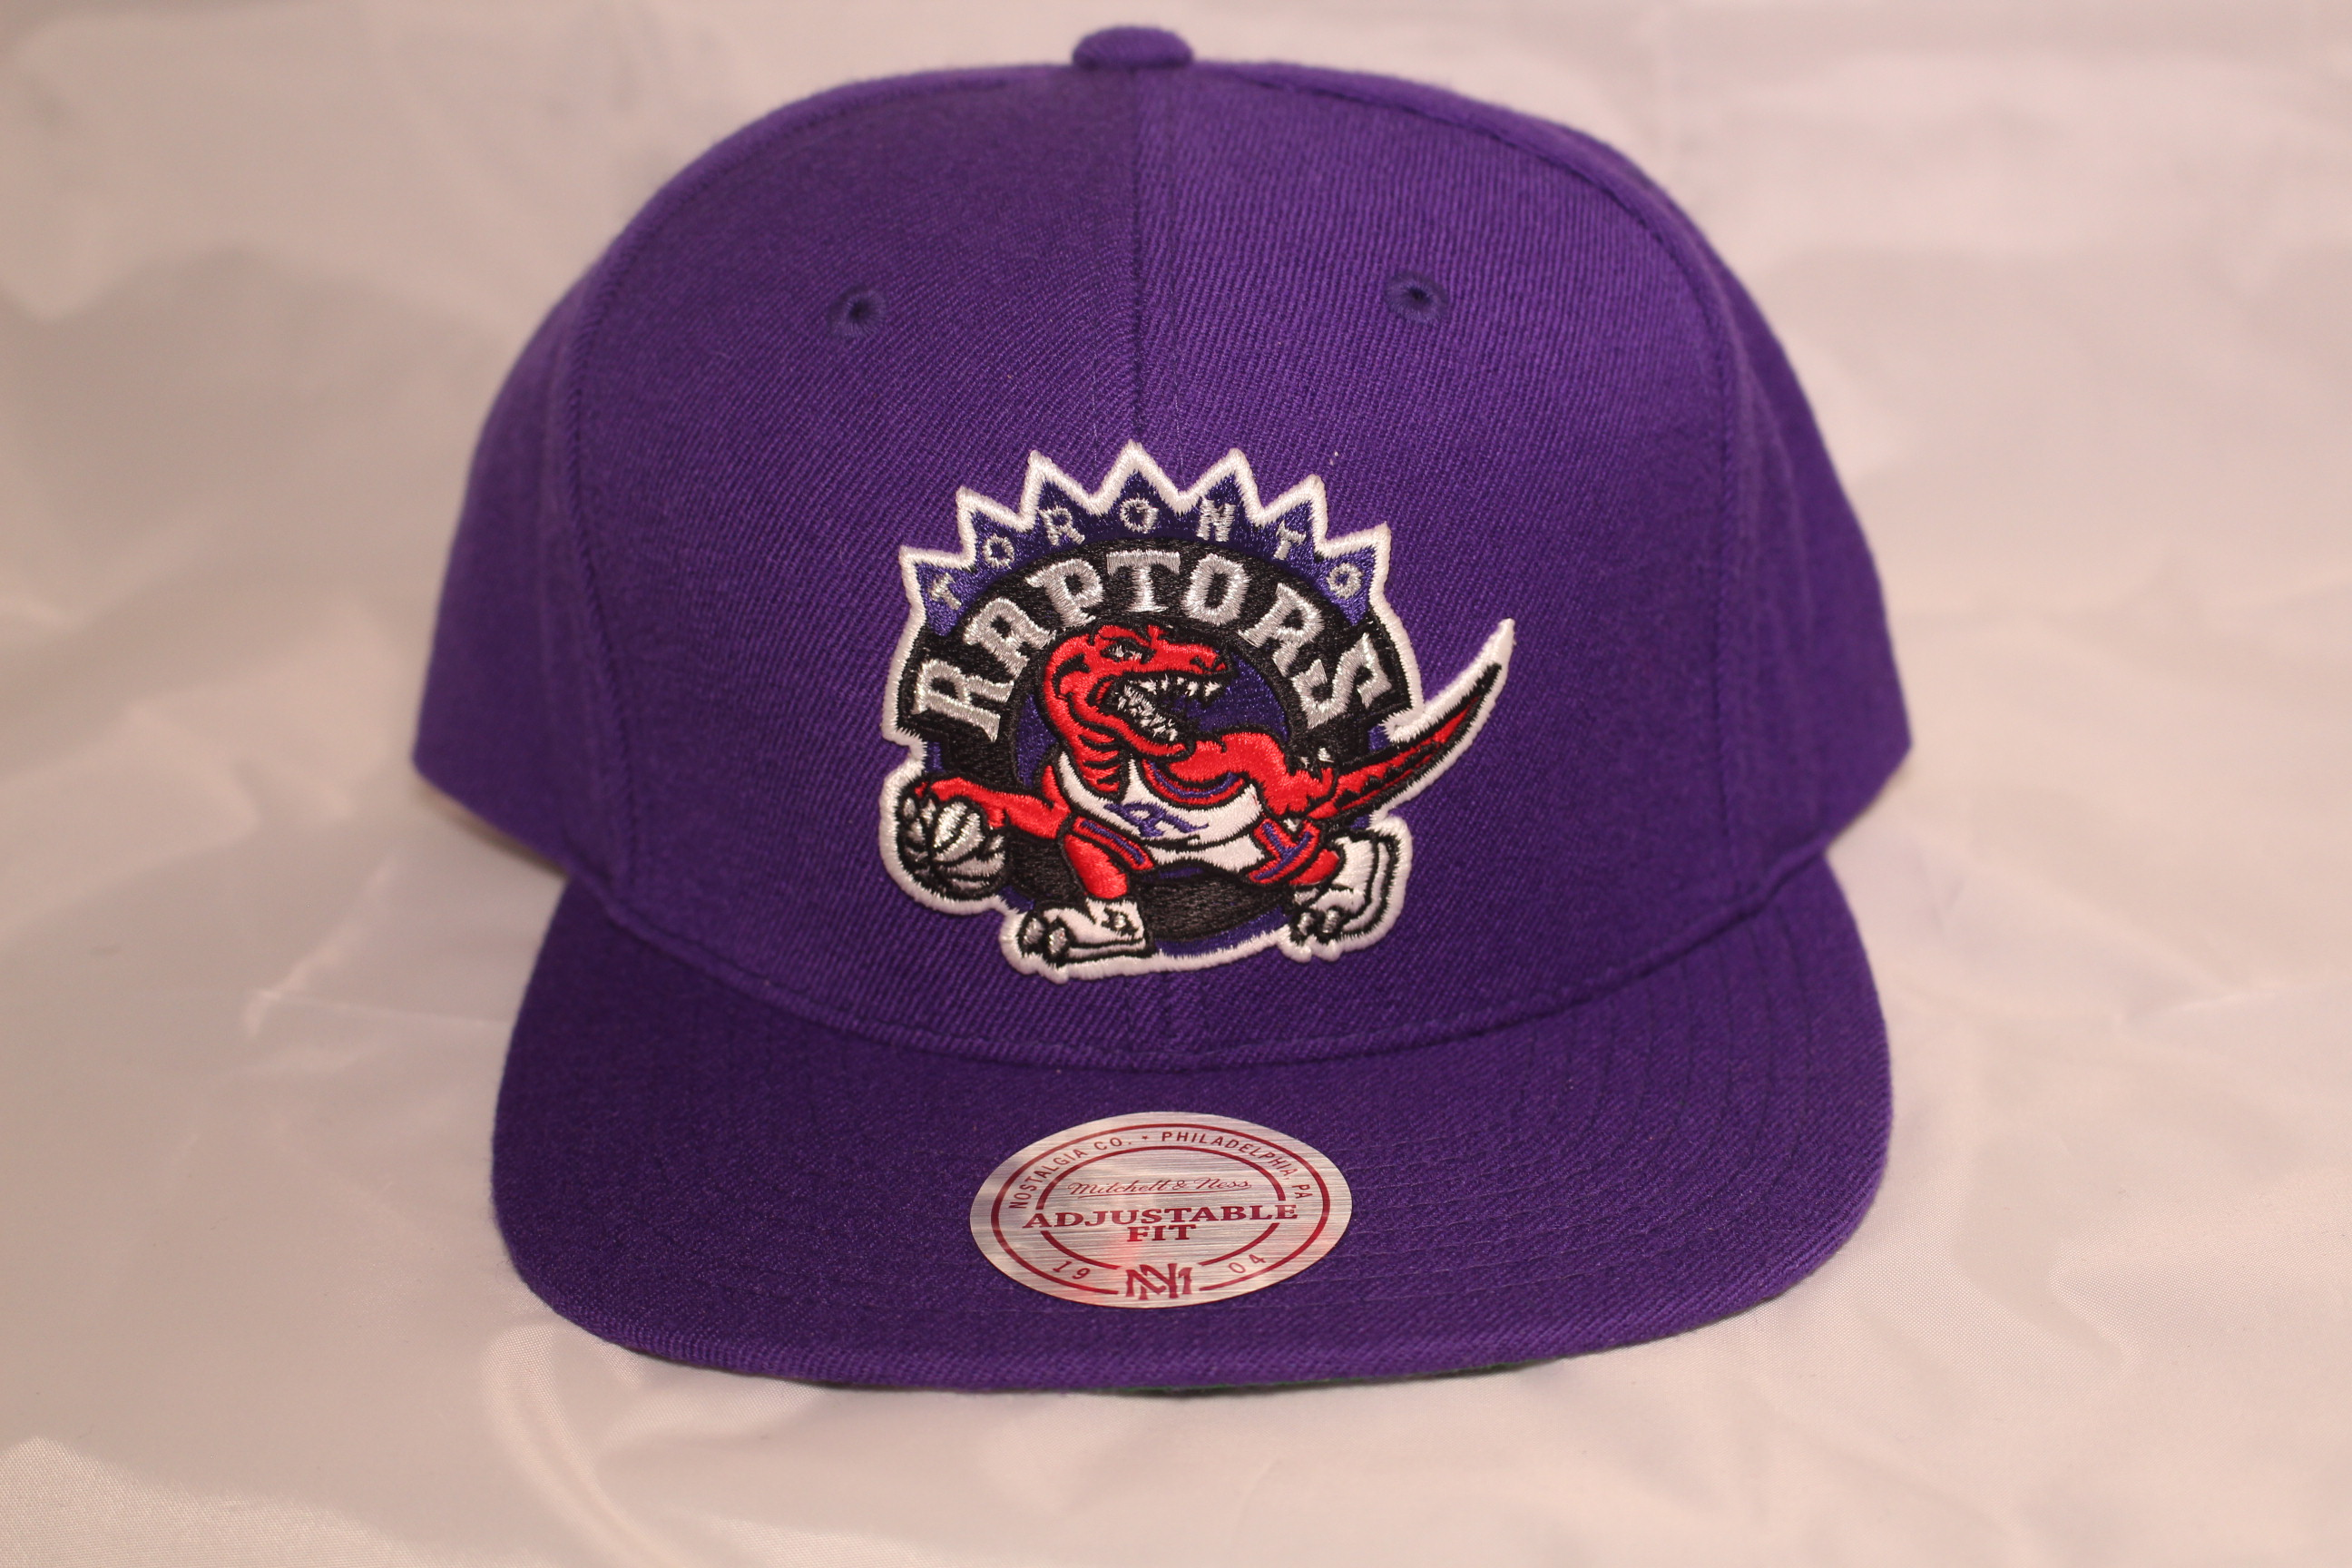 the best attitude 7e3a2 d098b Mitchell and Ness Toronto Raptors Snapback NBA Wool Solid 1995 Logo Cap.   44.99. Out of stock. prev